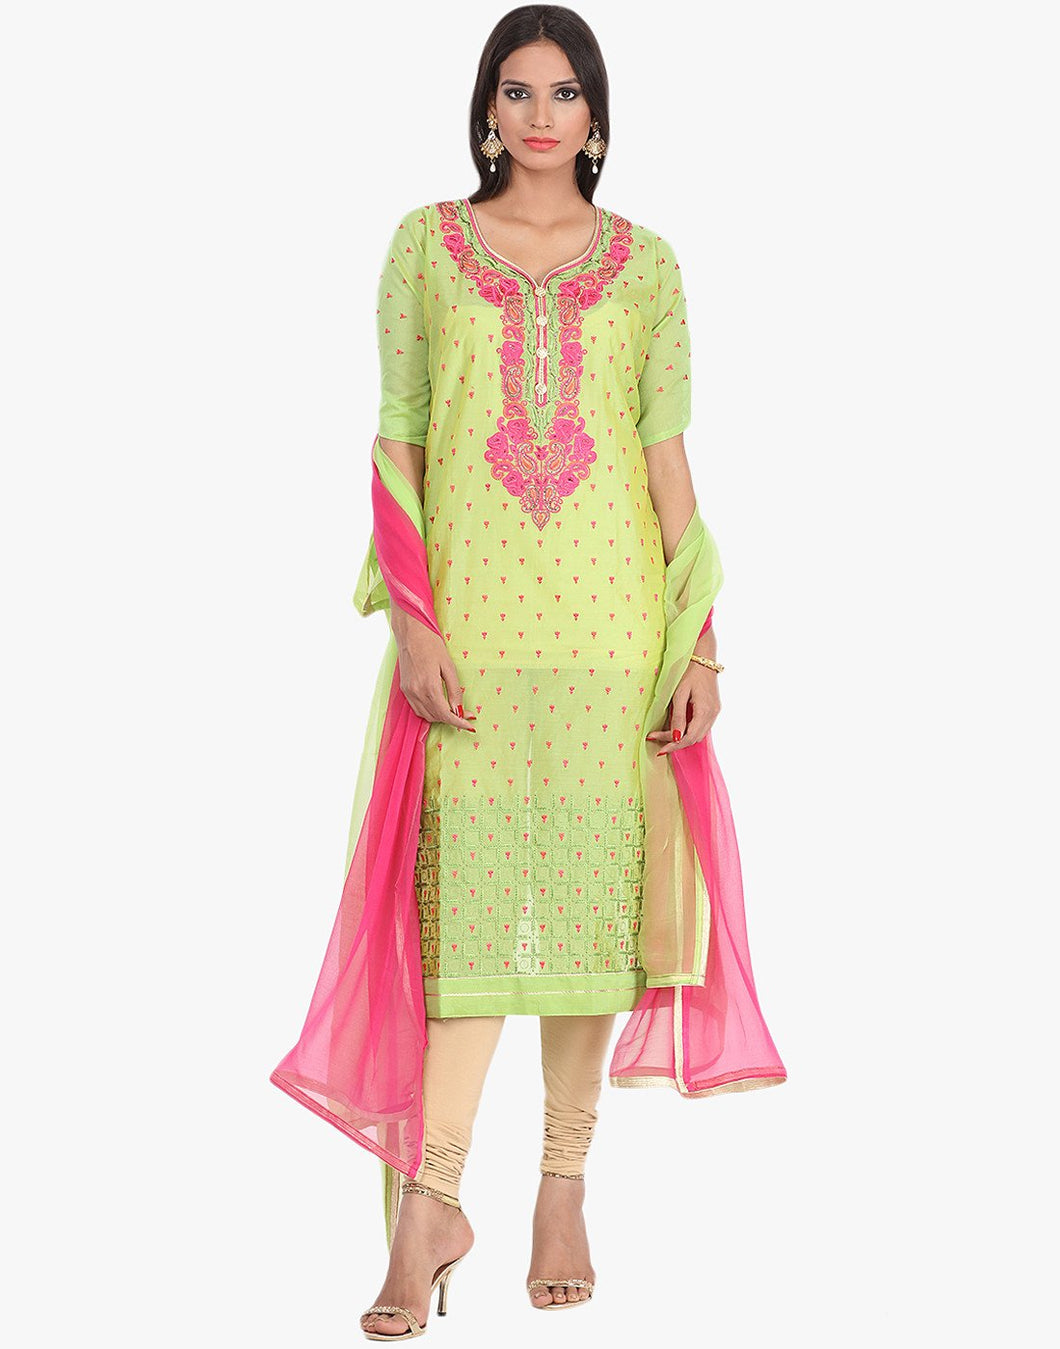 Unstitched Cotton Chanderi Suit With Thread Embroidery on Yoke By Meena Bazaar